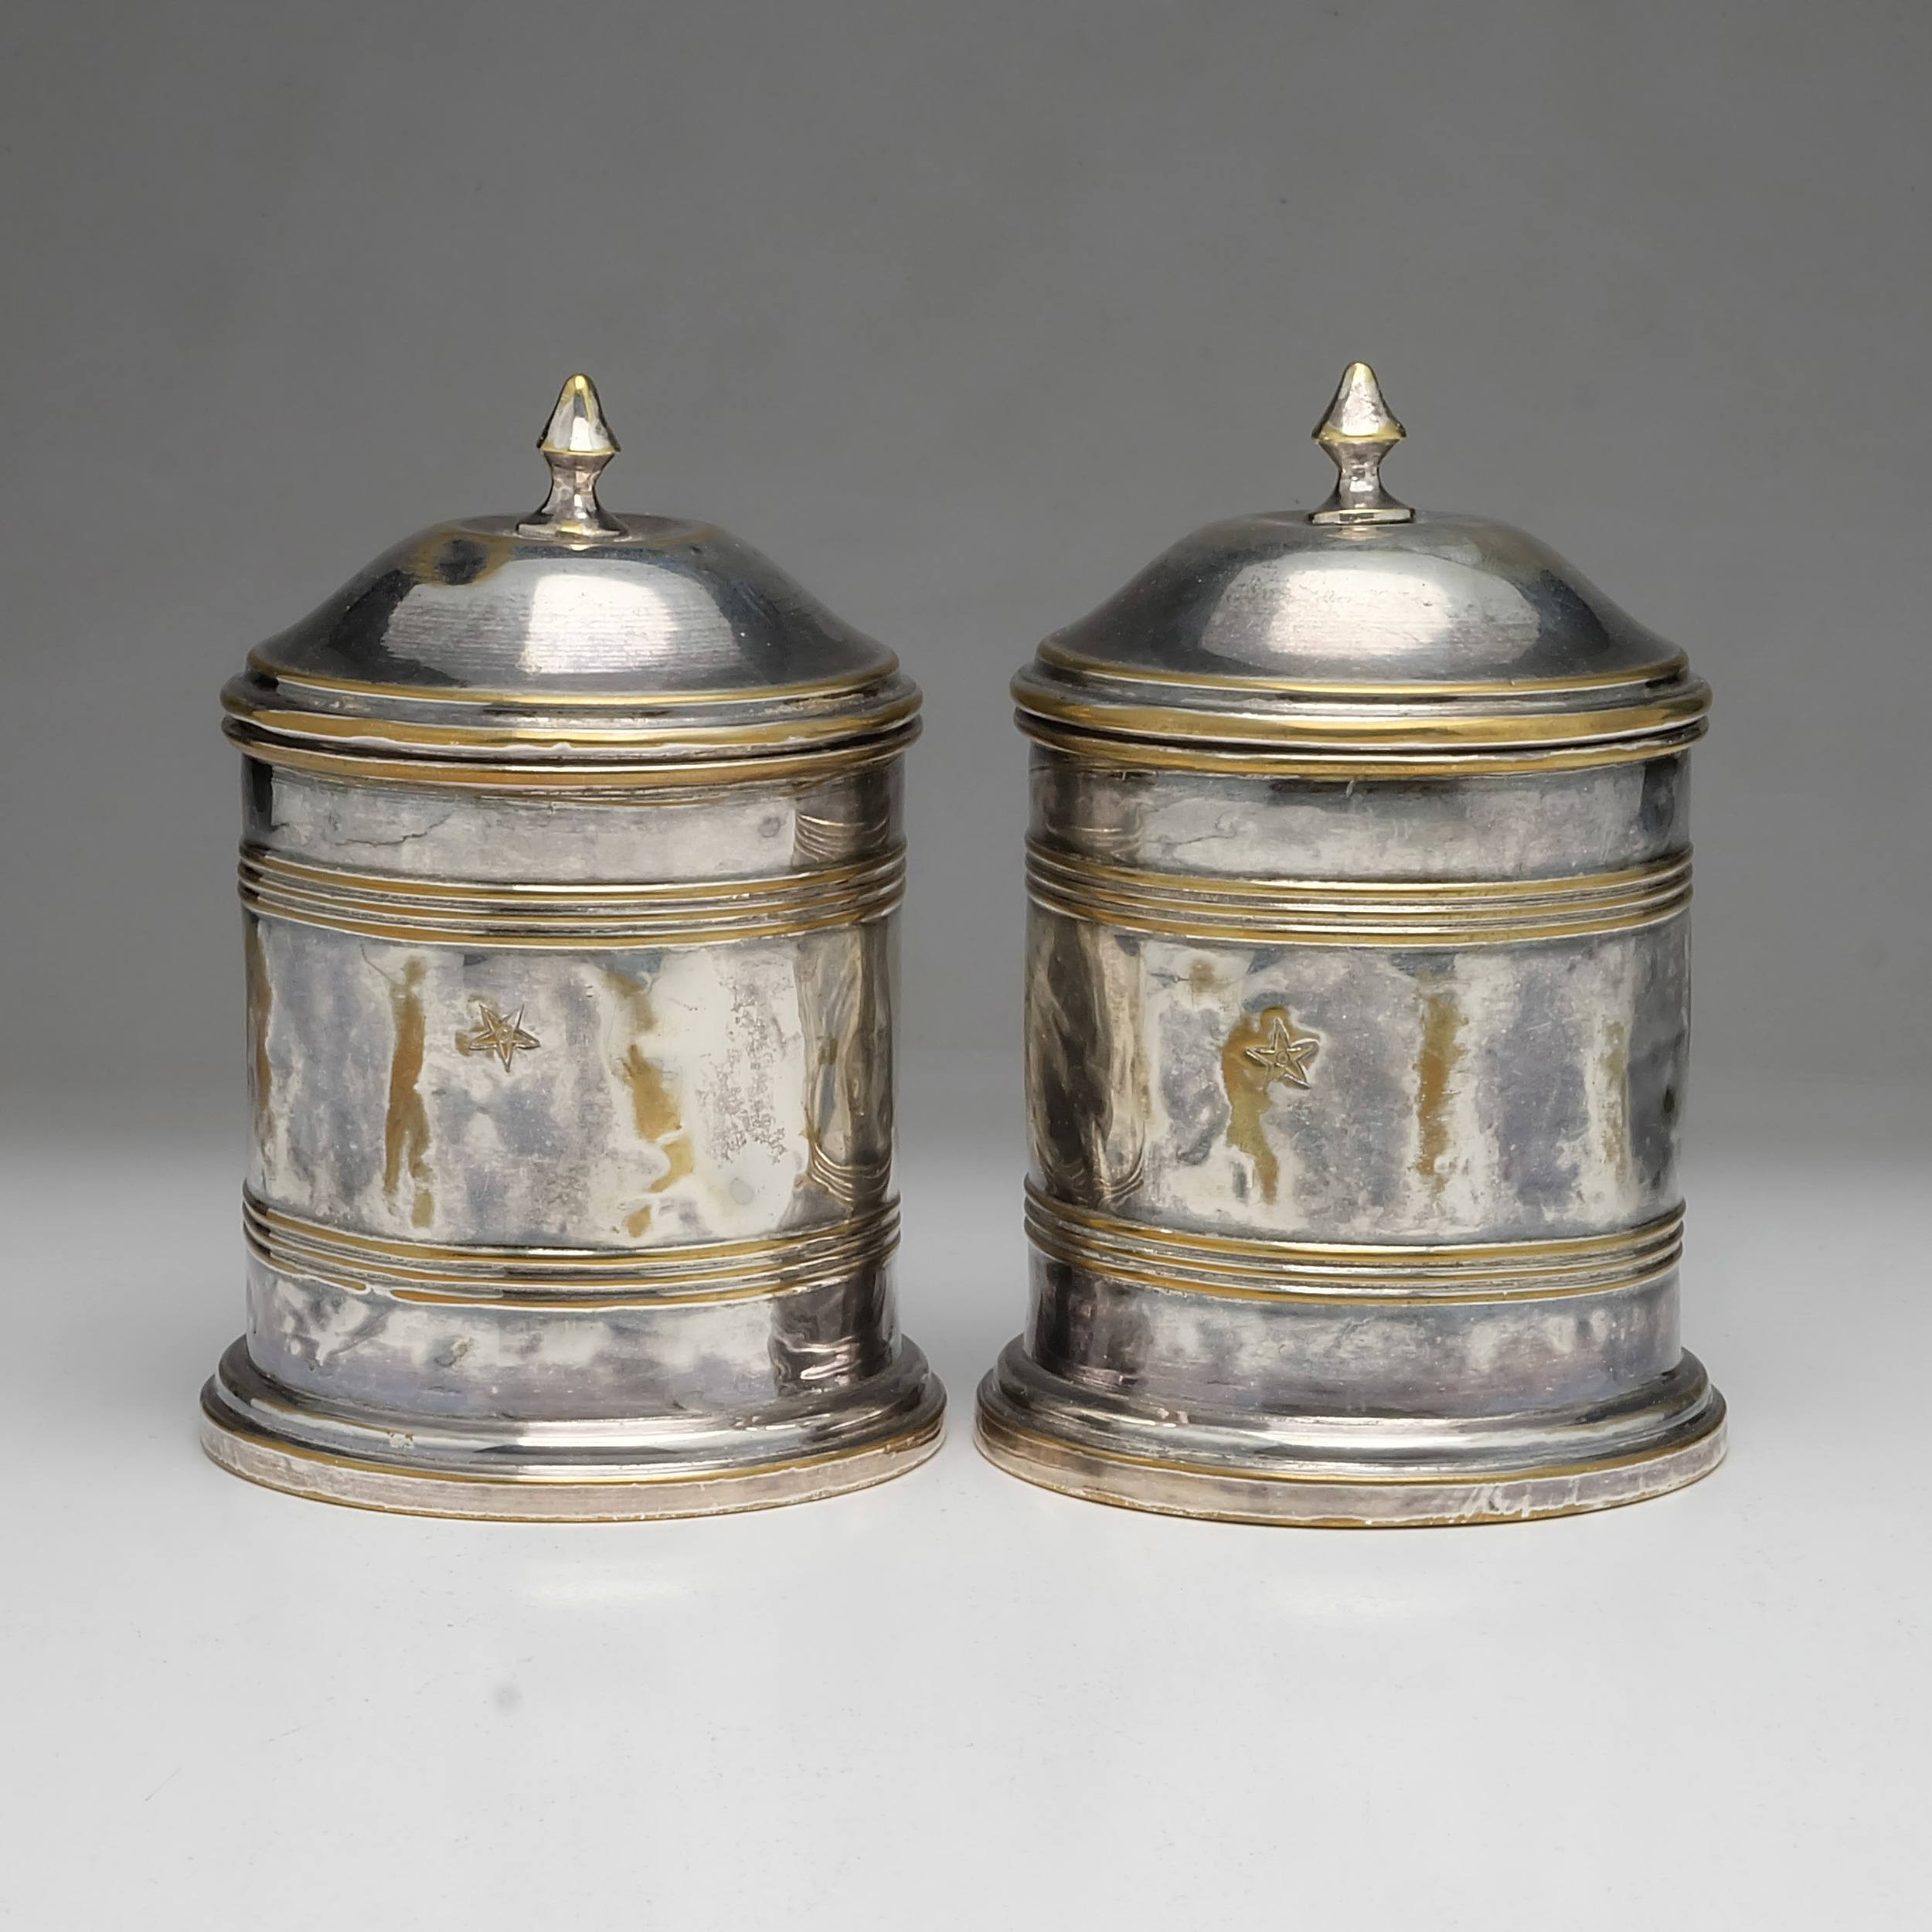 'Pair of Antique Silver Plated Brass Humidors'